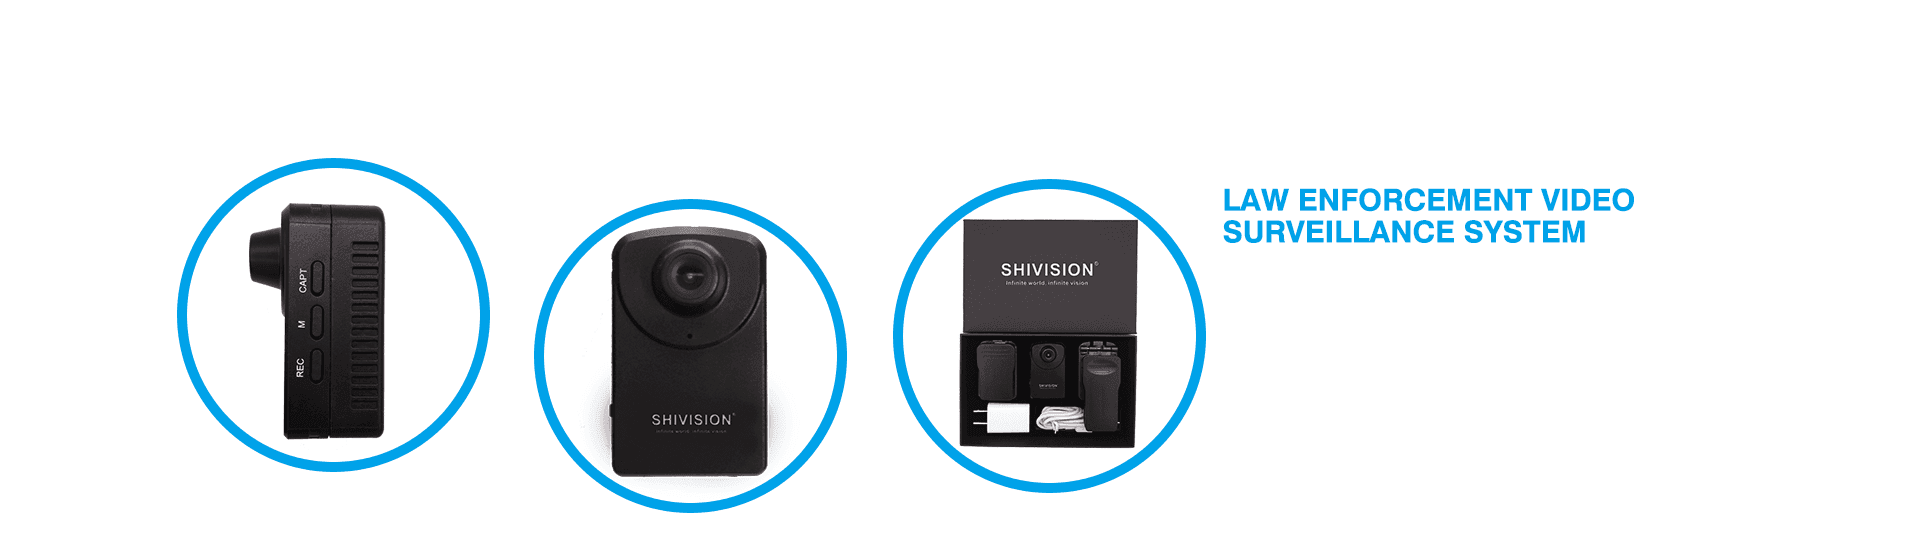 category-Best Law Enforcement Video Surveillance System | Shivision-Shivision-img